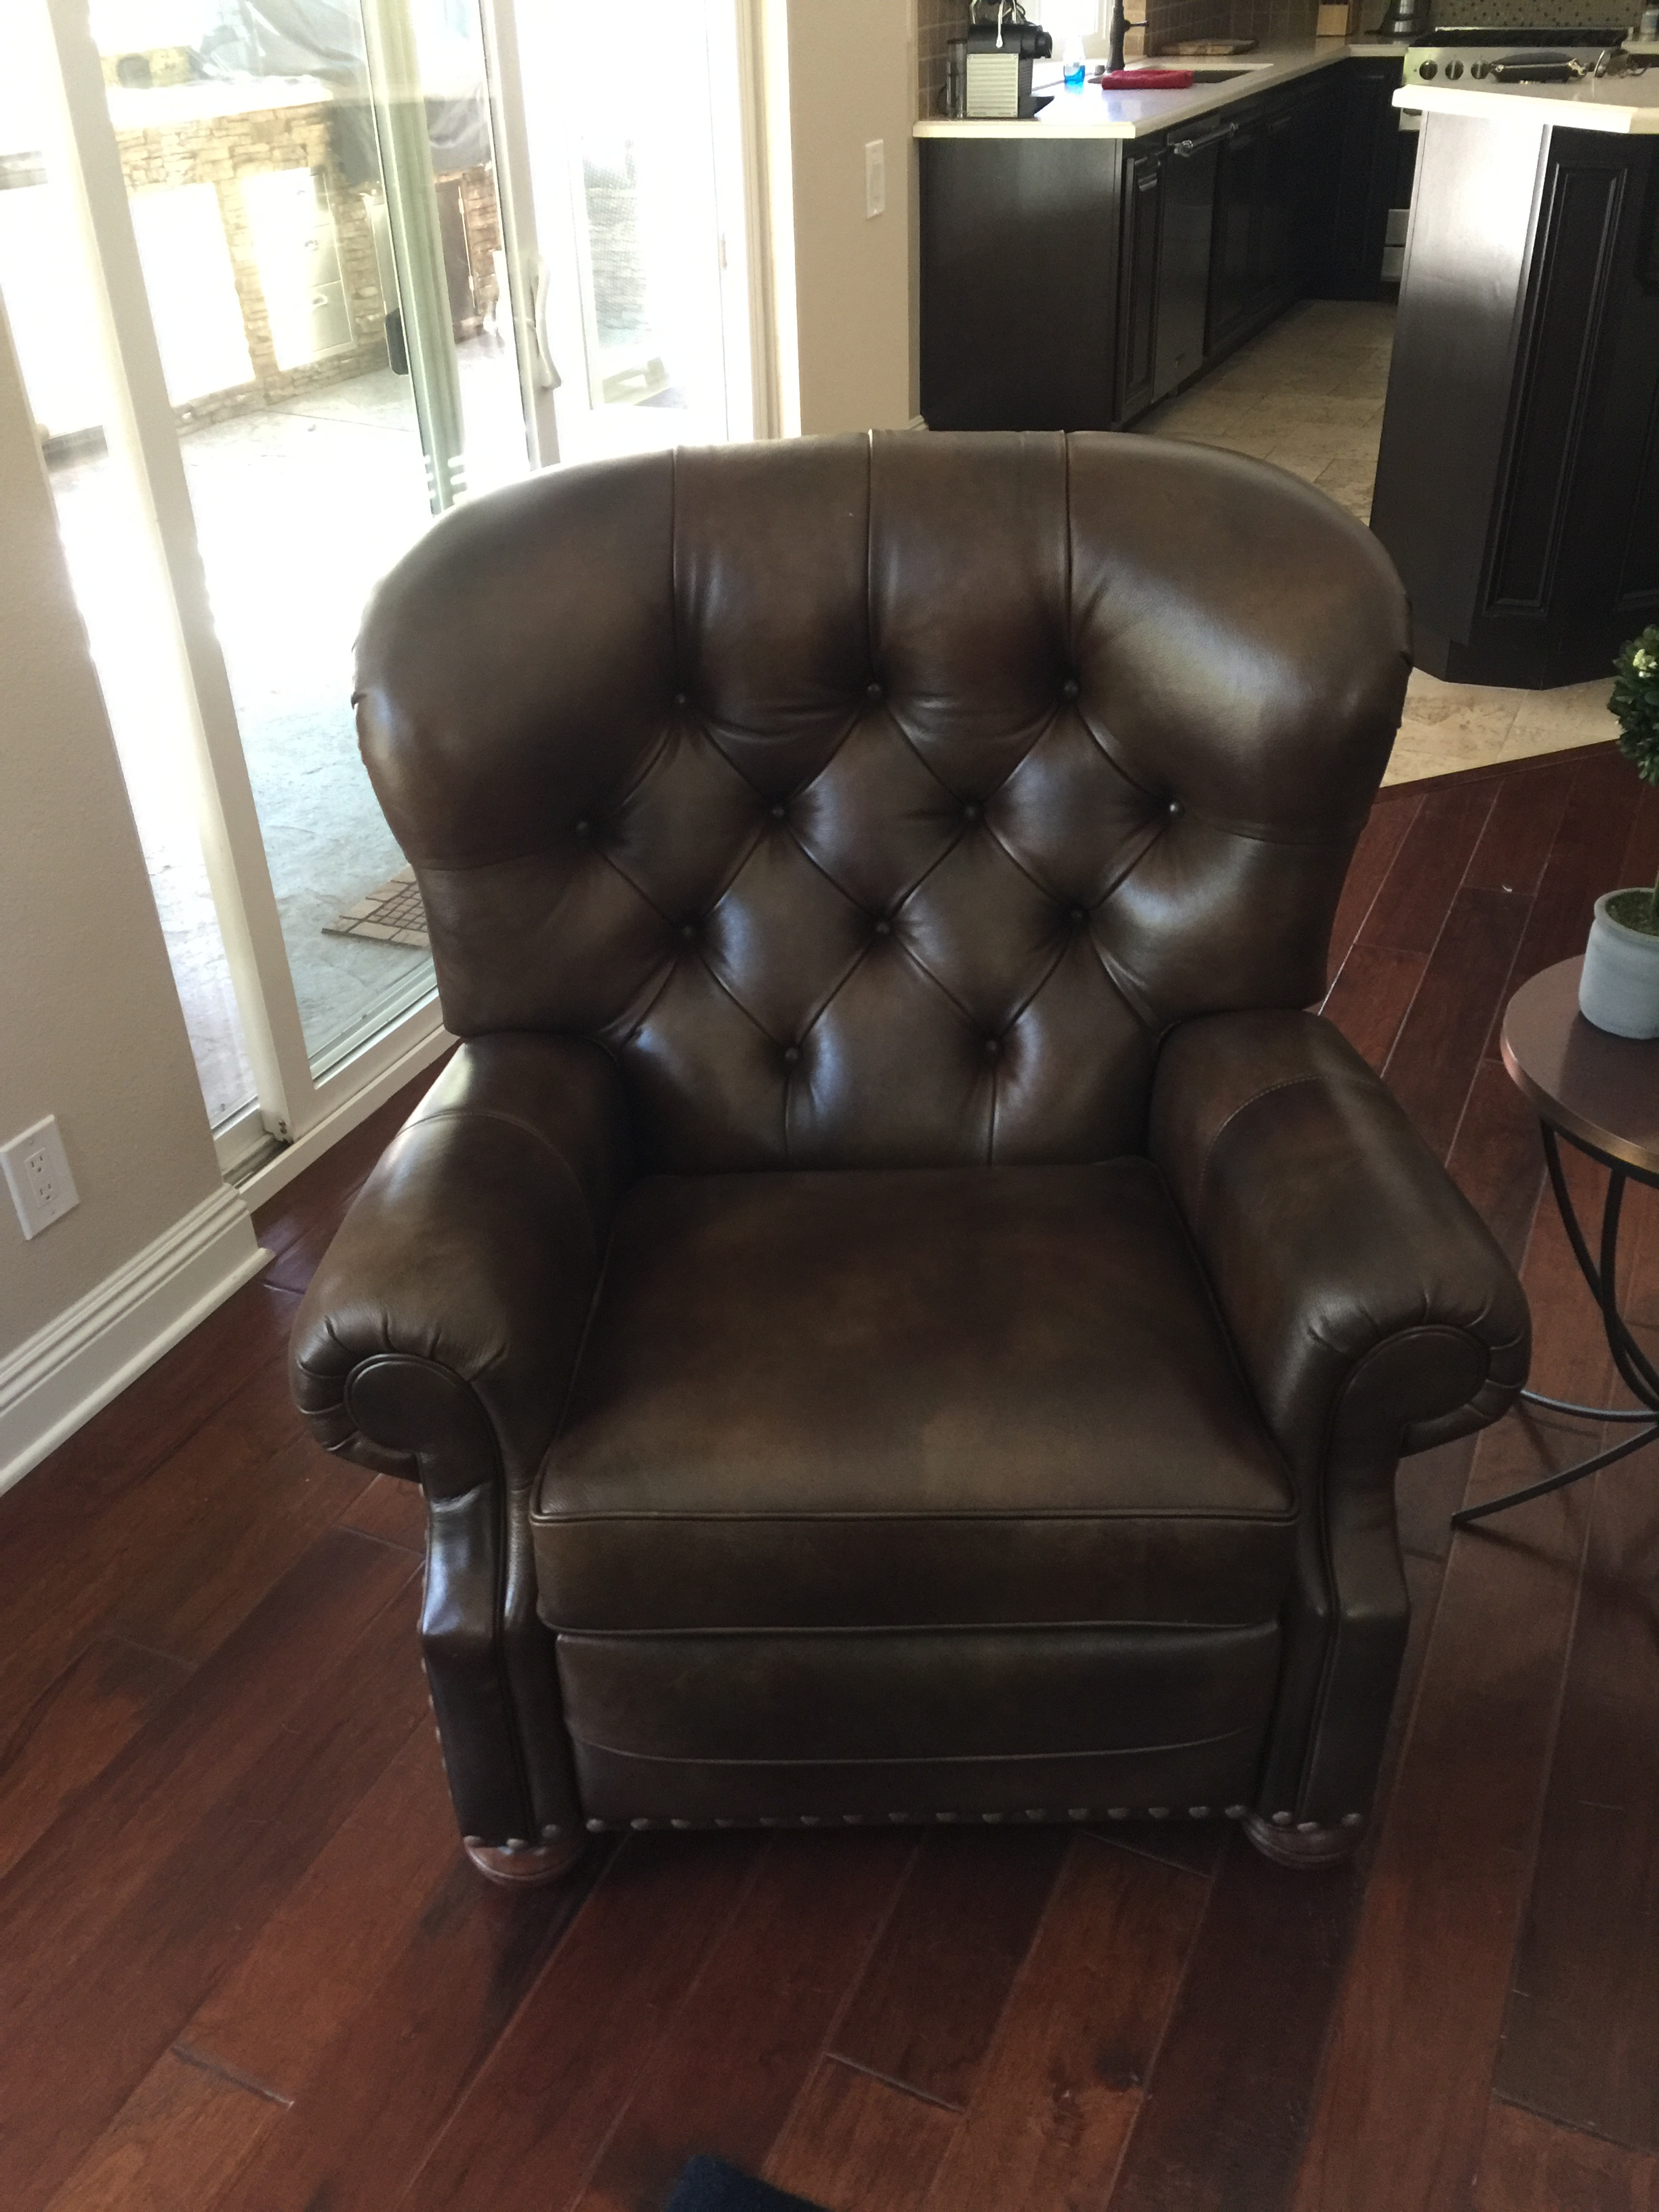 Ethan Allen Cromwell Leather Recliner - Image 2 of 4  sc 1 st  Chairish : ethan allen leather recliner chairs - islam-shia.org